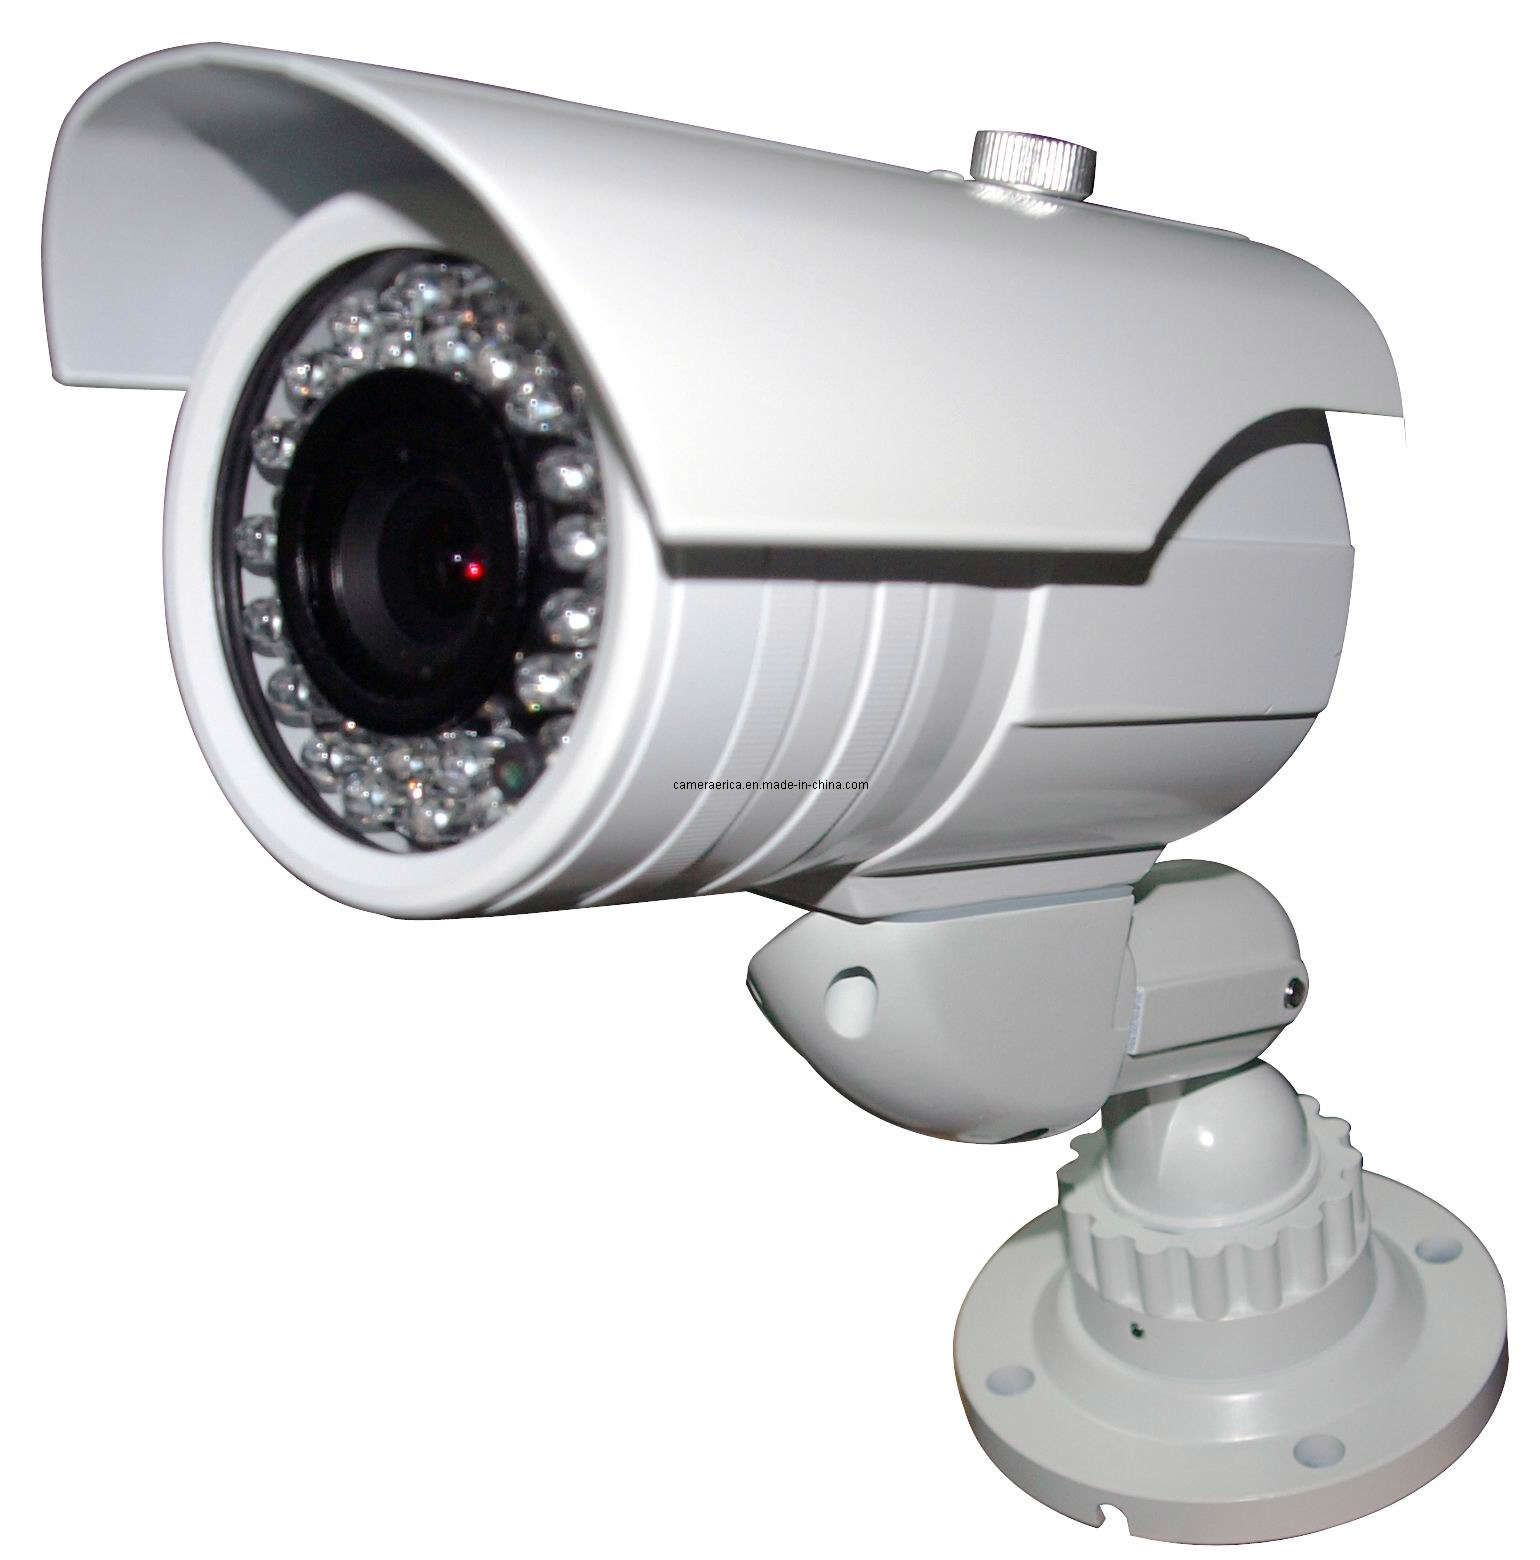 CCTV Security Camera Are you concerned about security of your home ...